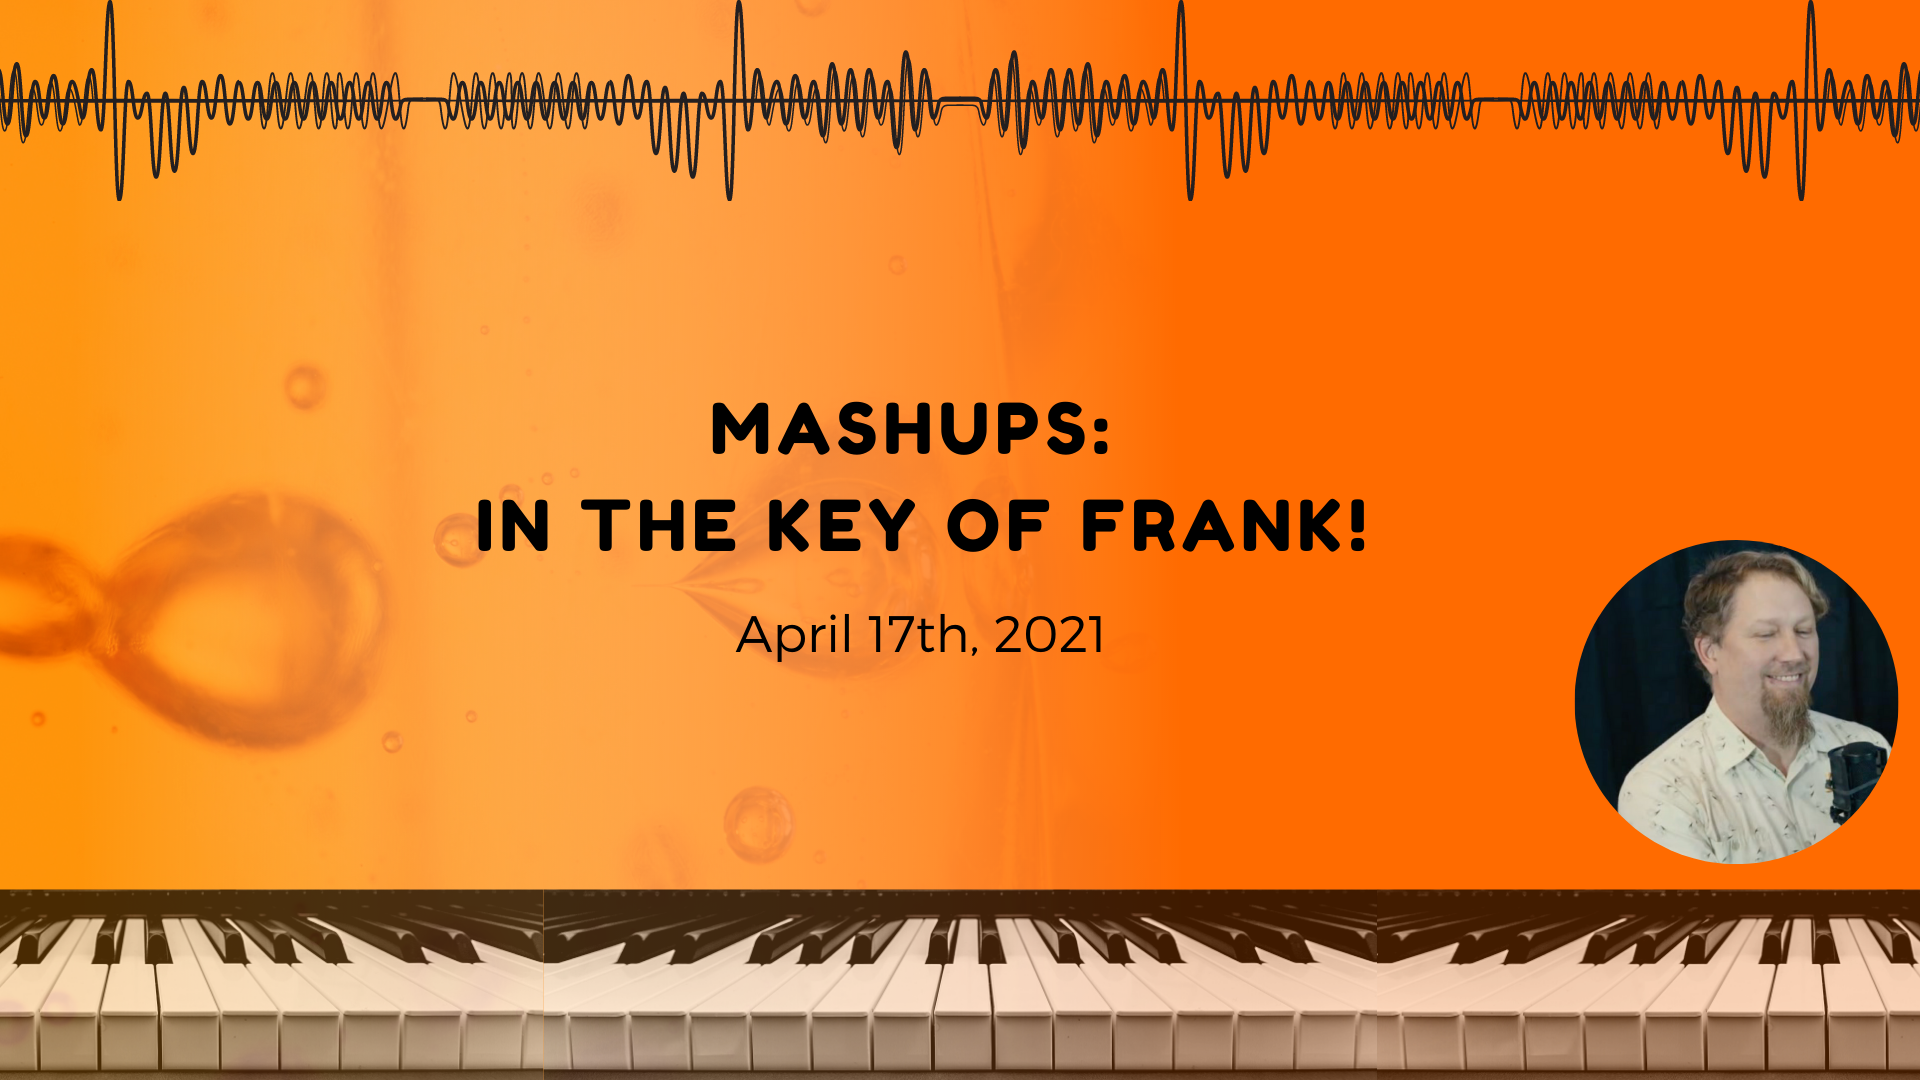 Mashups: In the Key of Frank